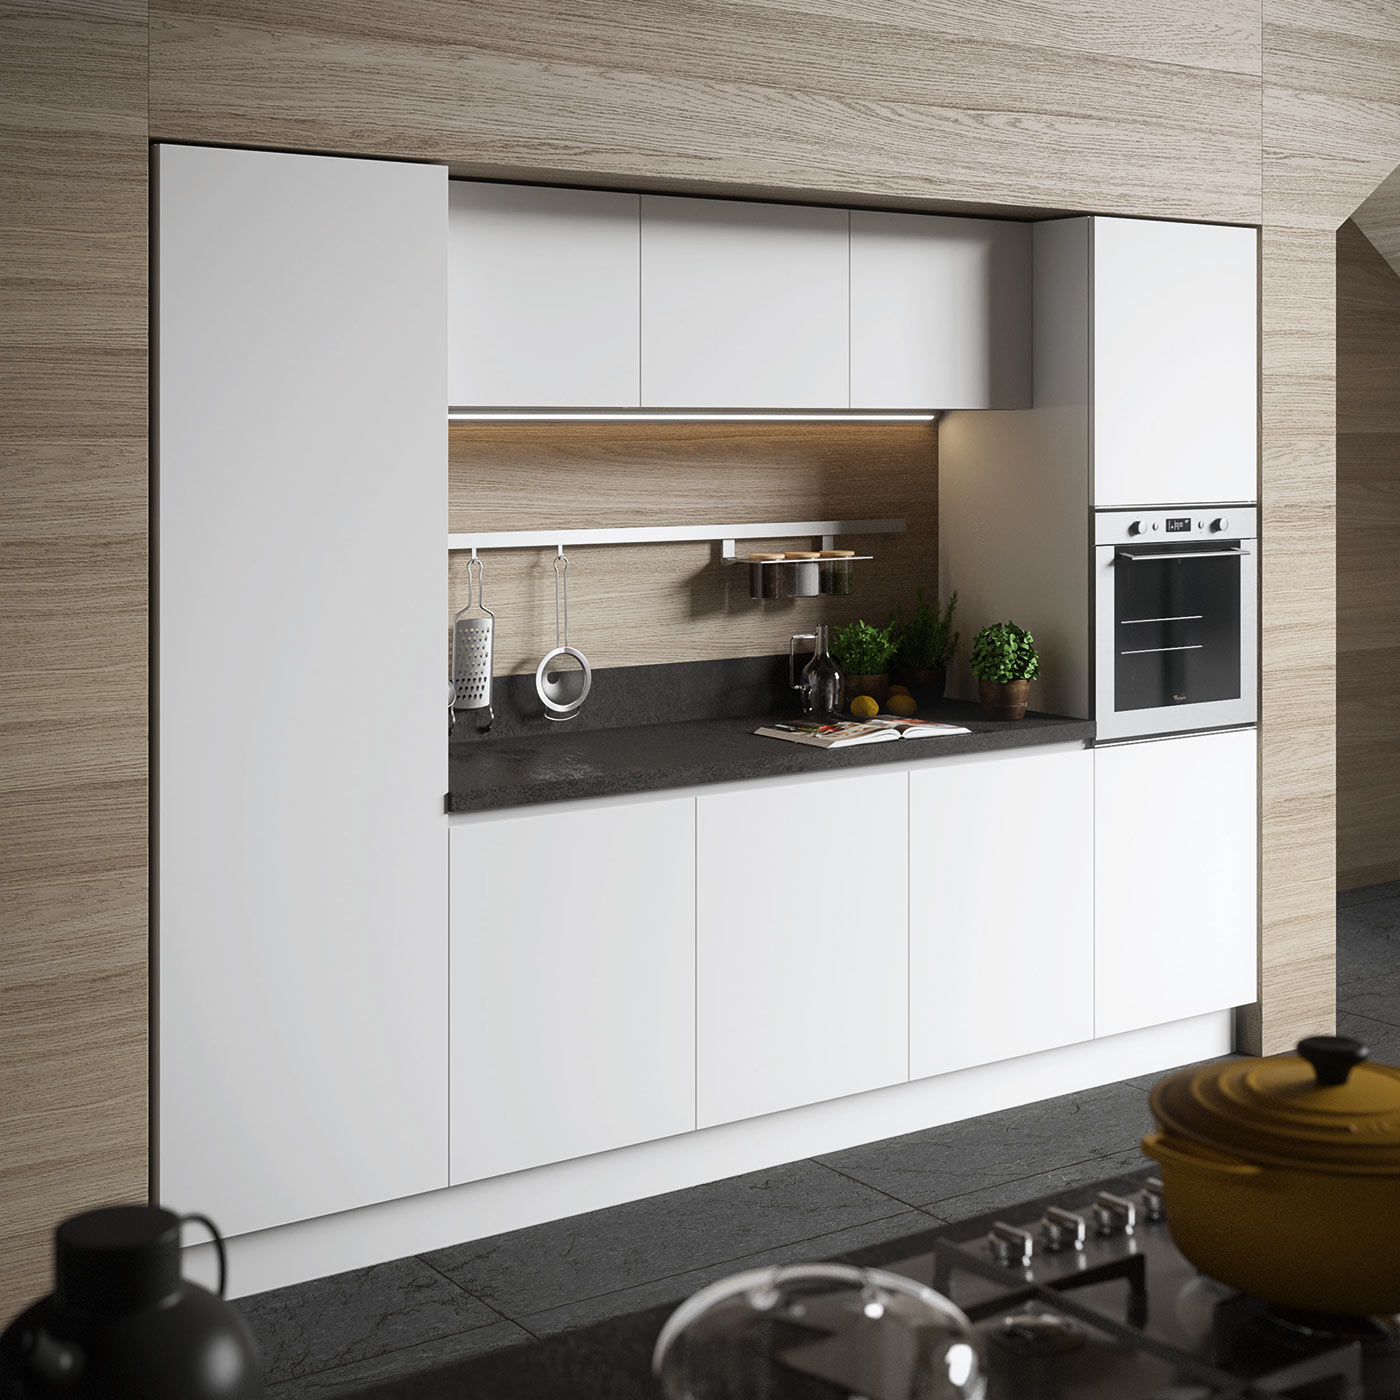 Muro Bianco E Grigio de.sign 2: modern white kitchen in fenix and black oxide